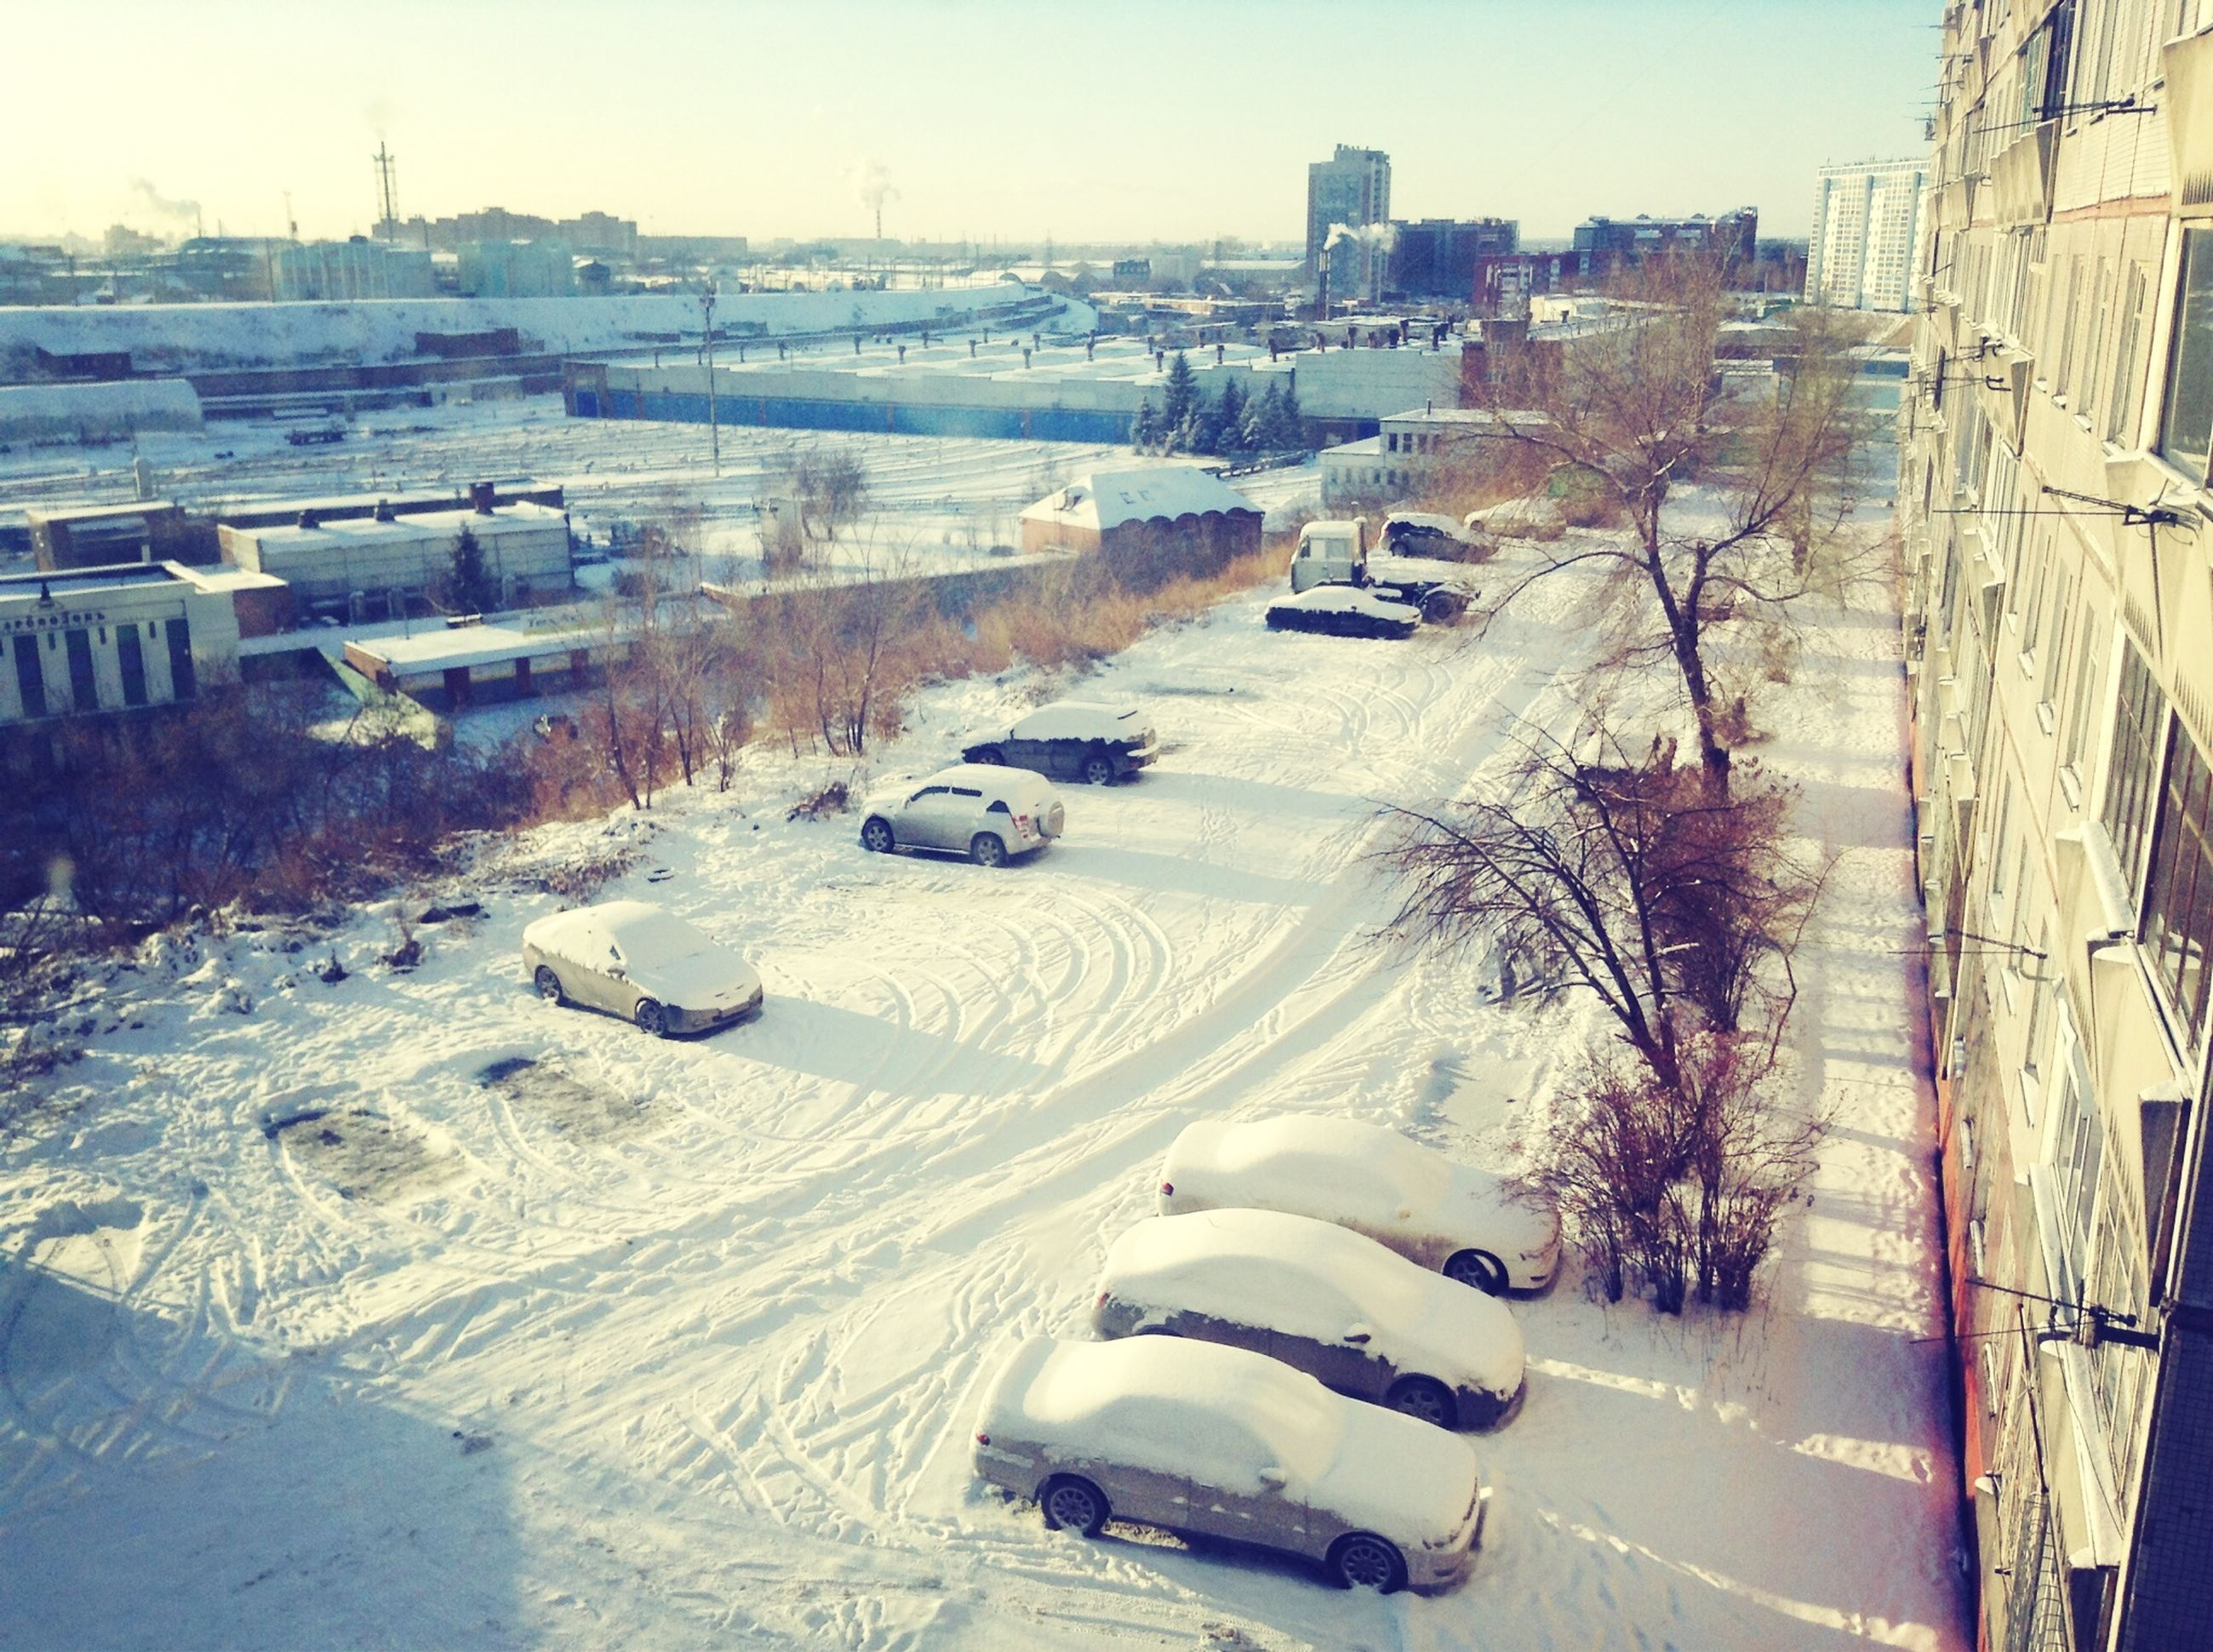 transportation, snow, building exterior, winter, cold temperature, car, architecture, built structure, street, mode of transport, road, land vehicle, high angle view, city, season, tree, sunlight, covering, outdoors, weather